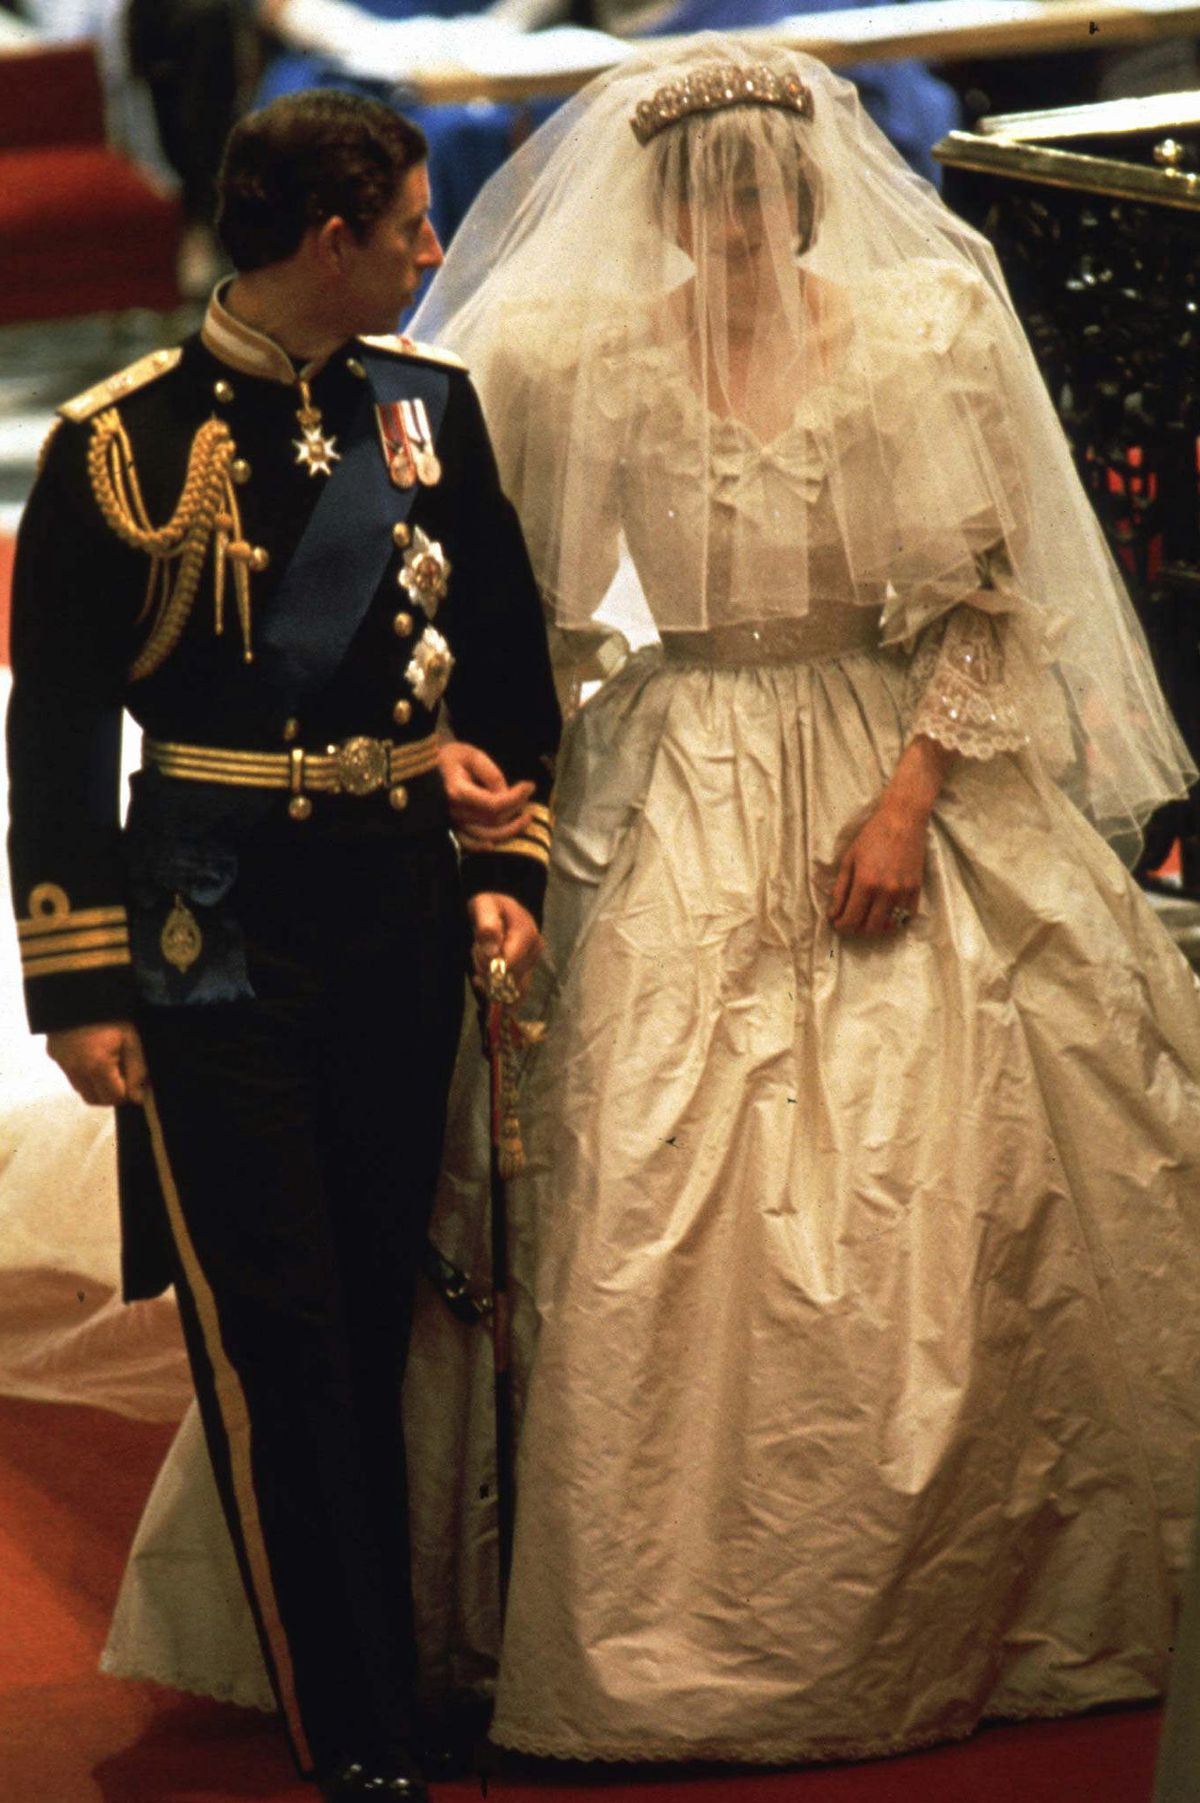 Twenty-year-old Lady Diana Spencer married Prince Charles, the heir to British throne, on July 29, 1981, at St. Paul's Cathedral in London.